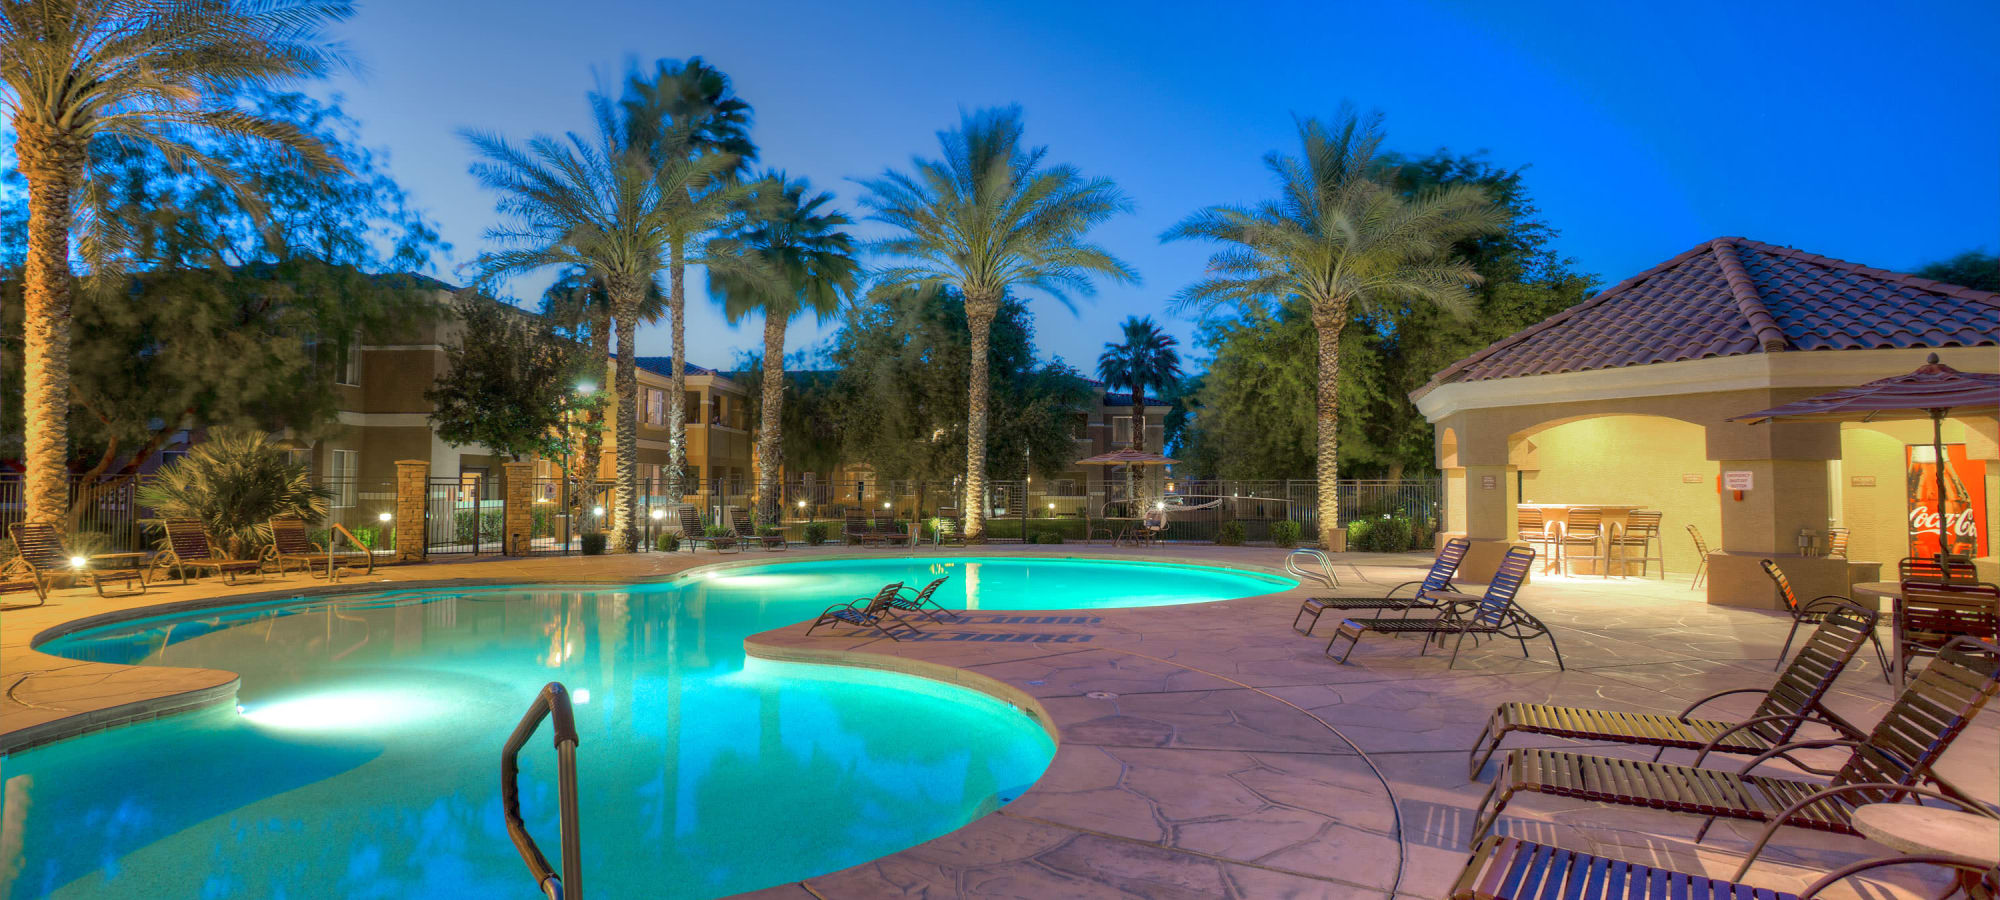 Night shot of the resort style swimming pool with lounge chairs at Remington Ranch in Litchfield Park, Arizona